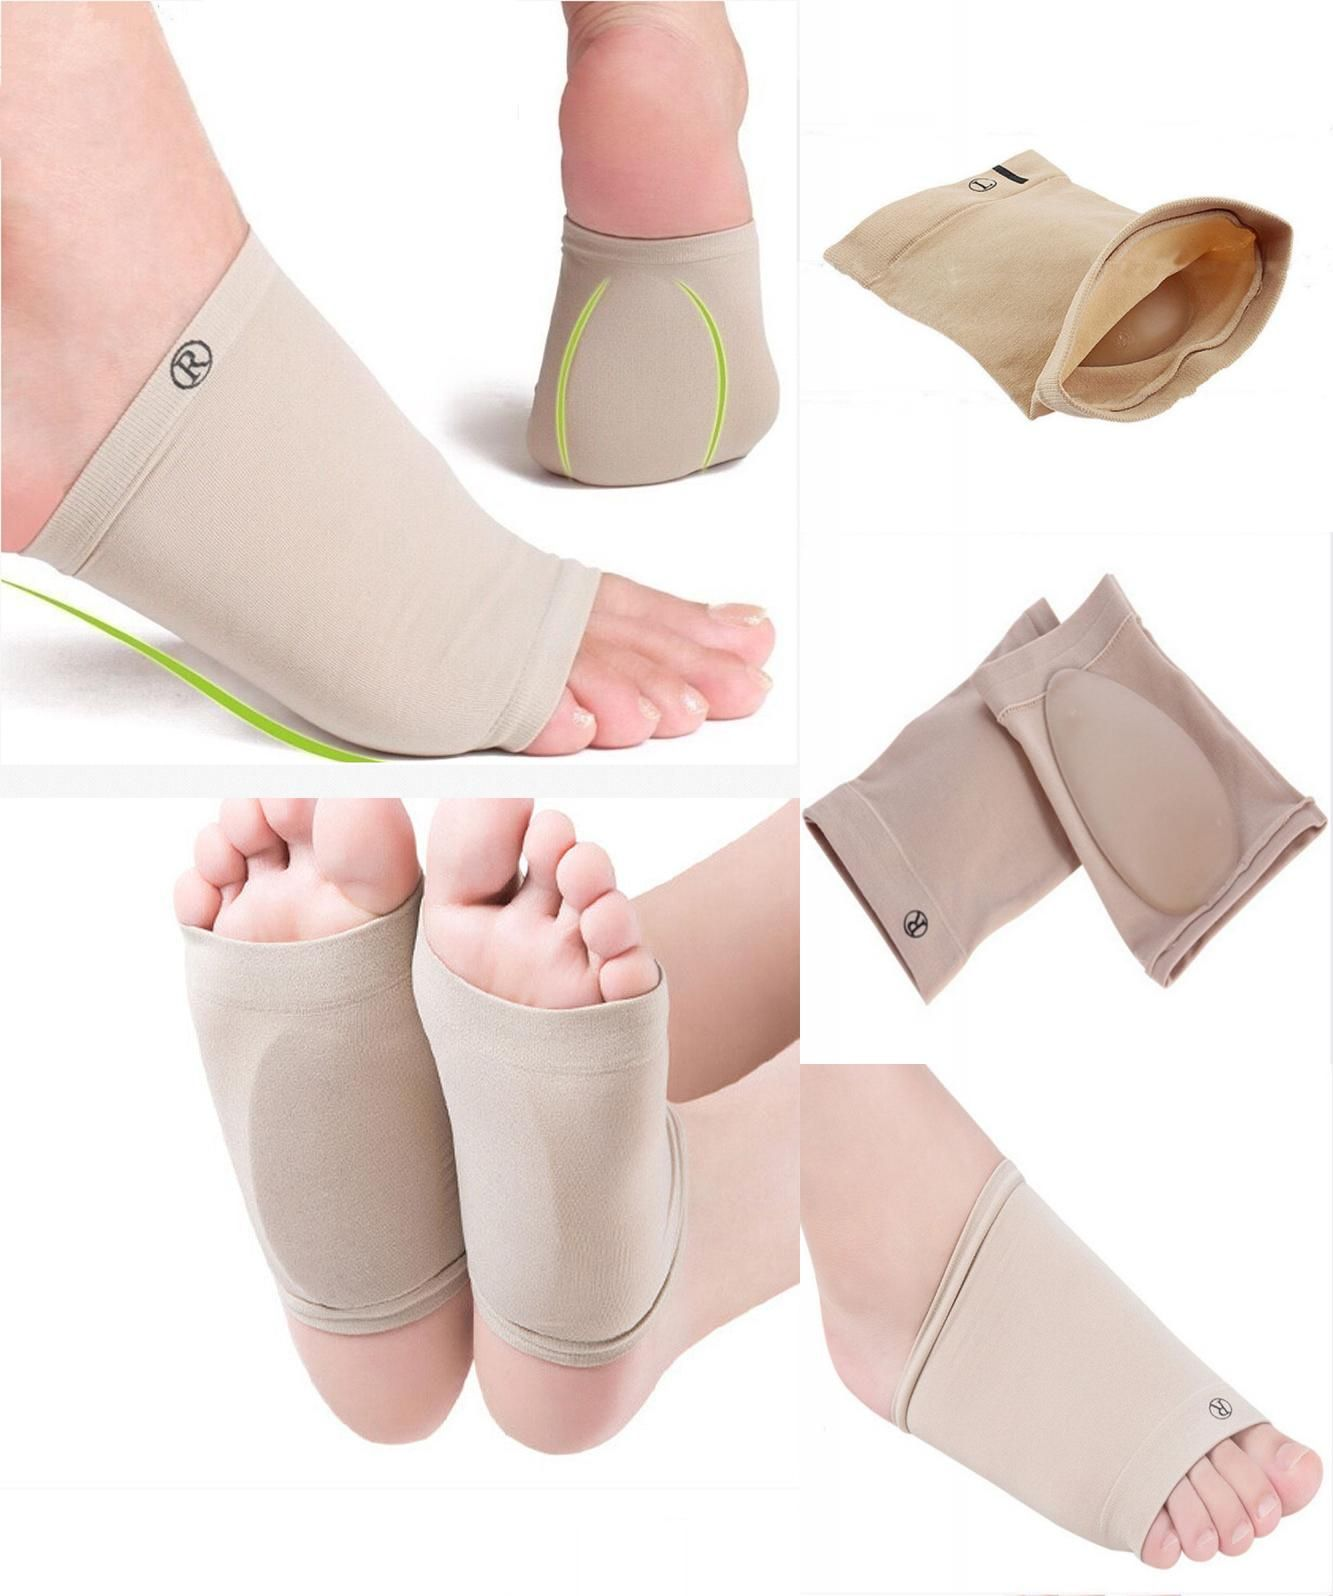 1X Orthotic Arch Support Plantar Fasciitis Brace Sleeves Supports Flat Feet Care